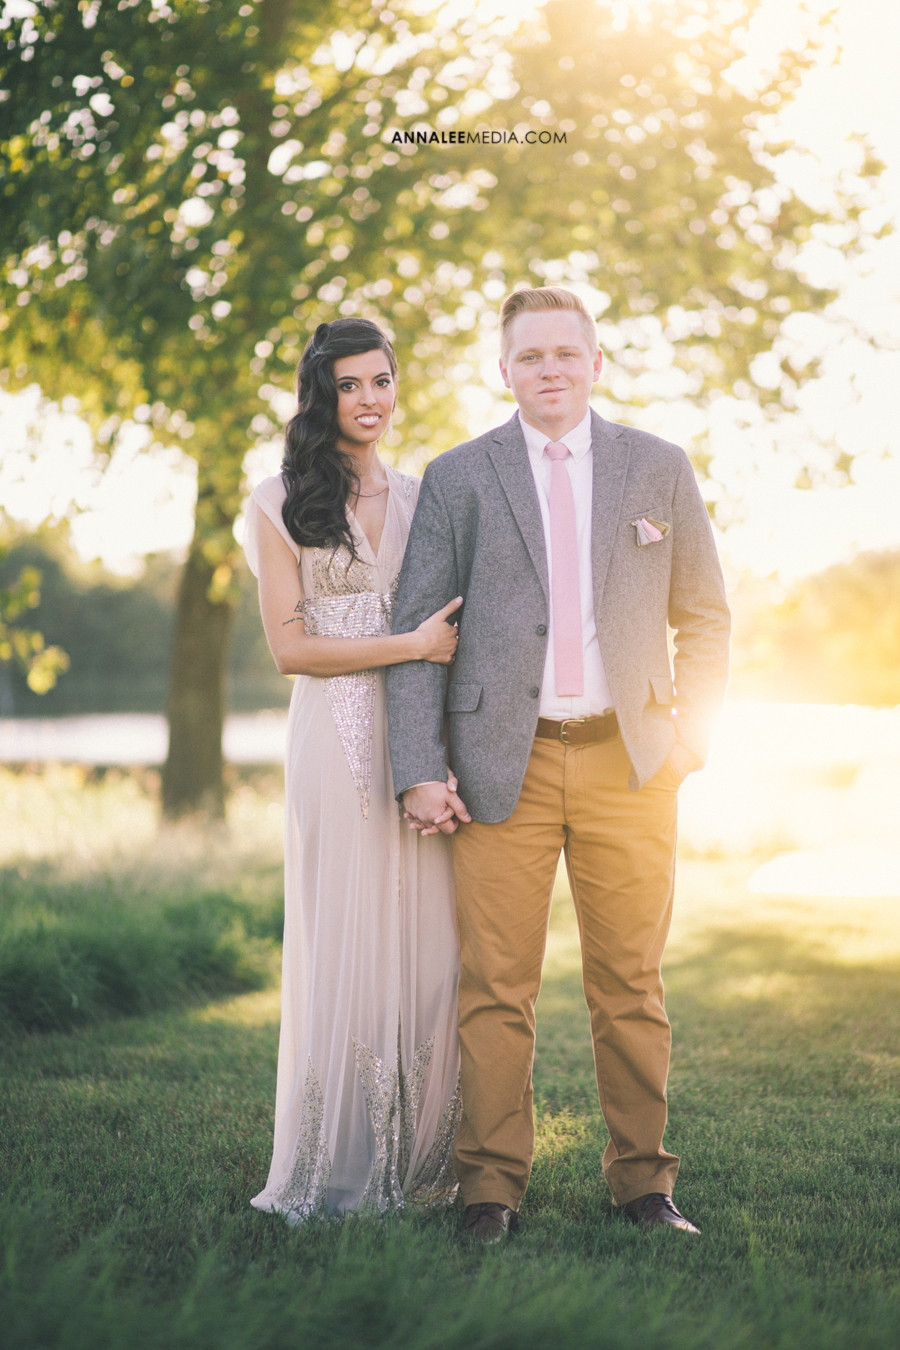 3-oklahoma-wedding-photographer-backyard-alexa-dumas-brandon-land-modern-graphic-designer-outdoor-summer-trendy-hipster-couple-portraits